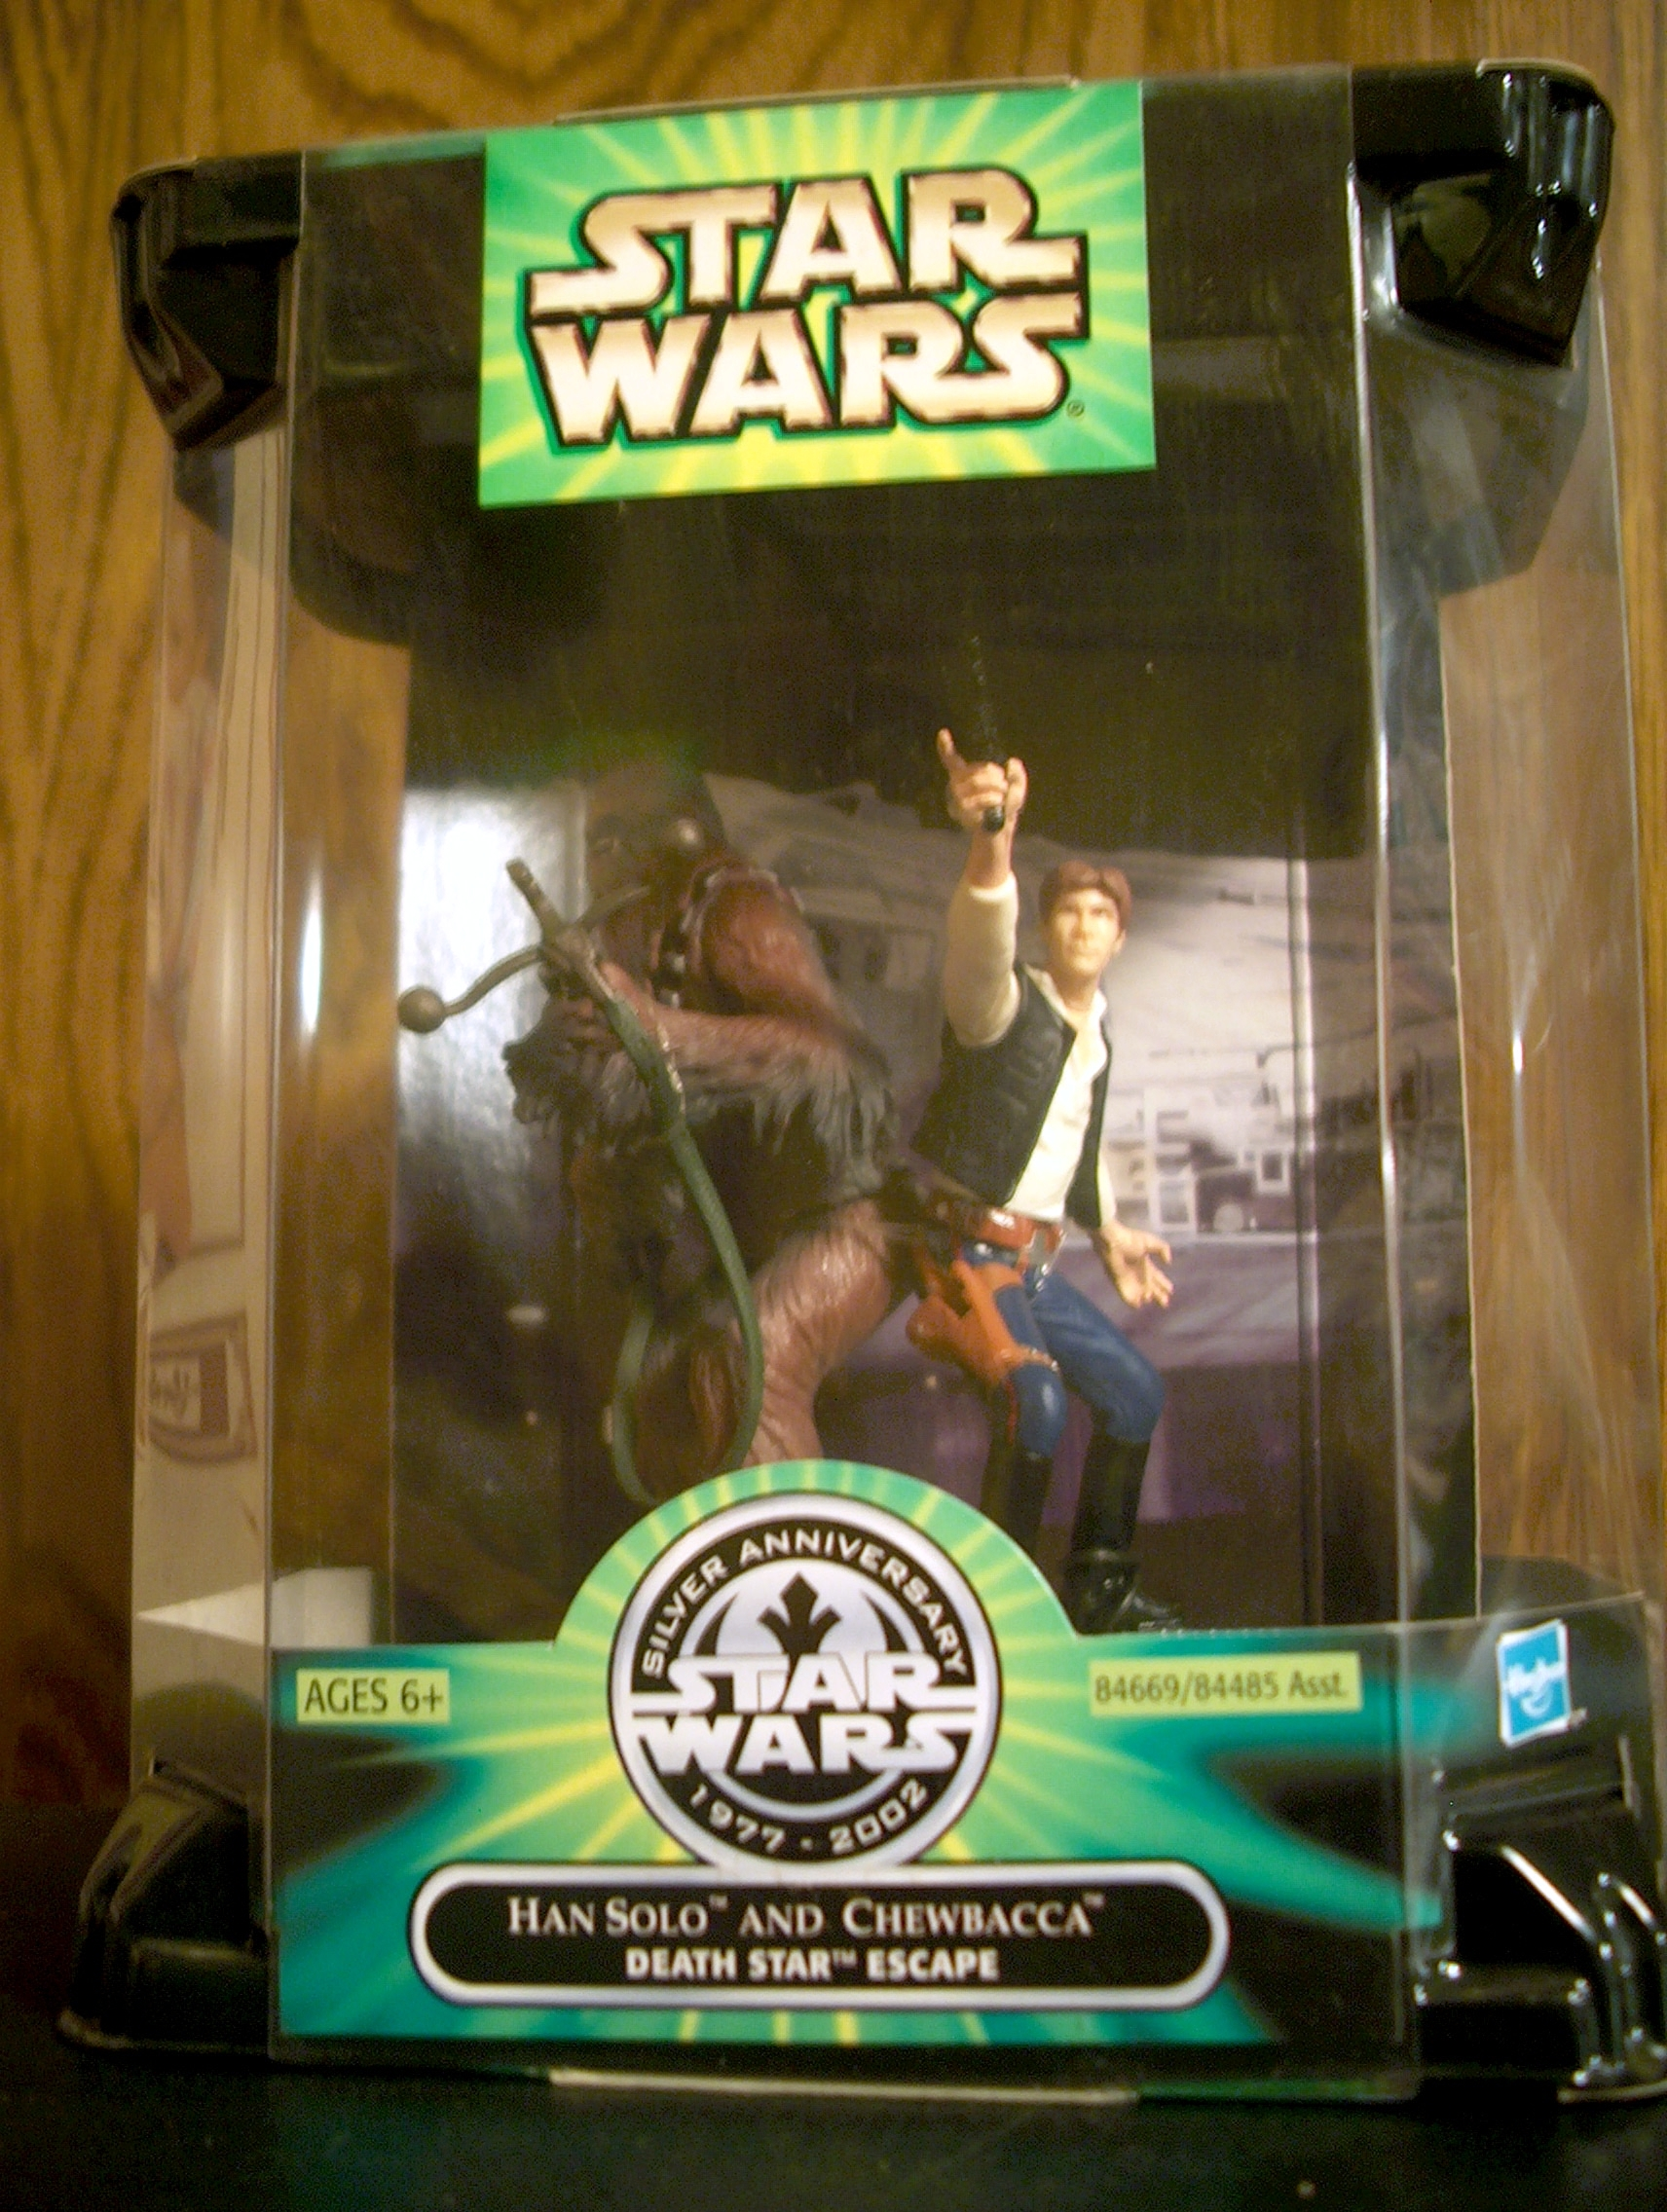 Han Solo and Chewbacca - Death Star Escape (2 Pack)